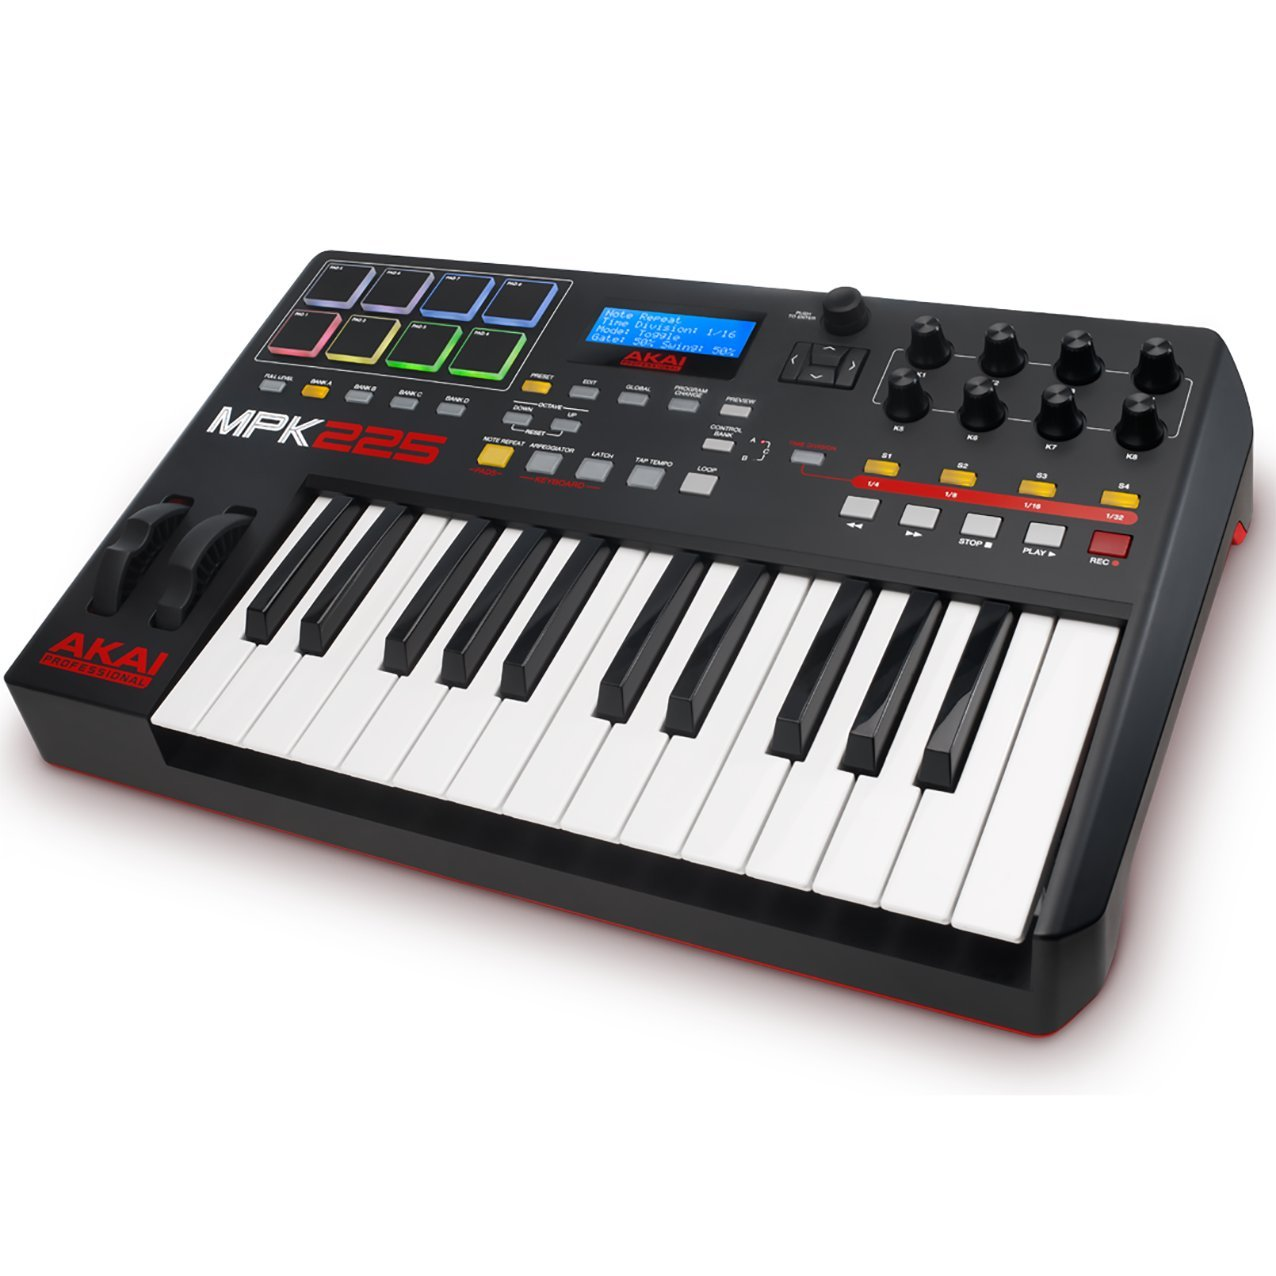 Akai Professional MPK225   25-Key USB MIDI Keyboard & Drum Pad Controller with LCD Screen (8 Pads / 8 Knobs), VIP Software Download Included by Akai Professional